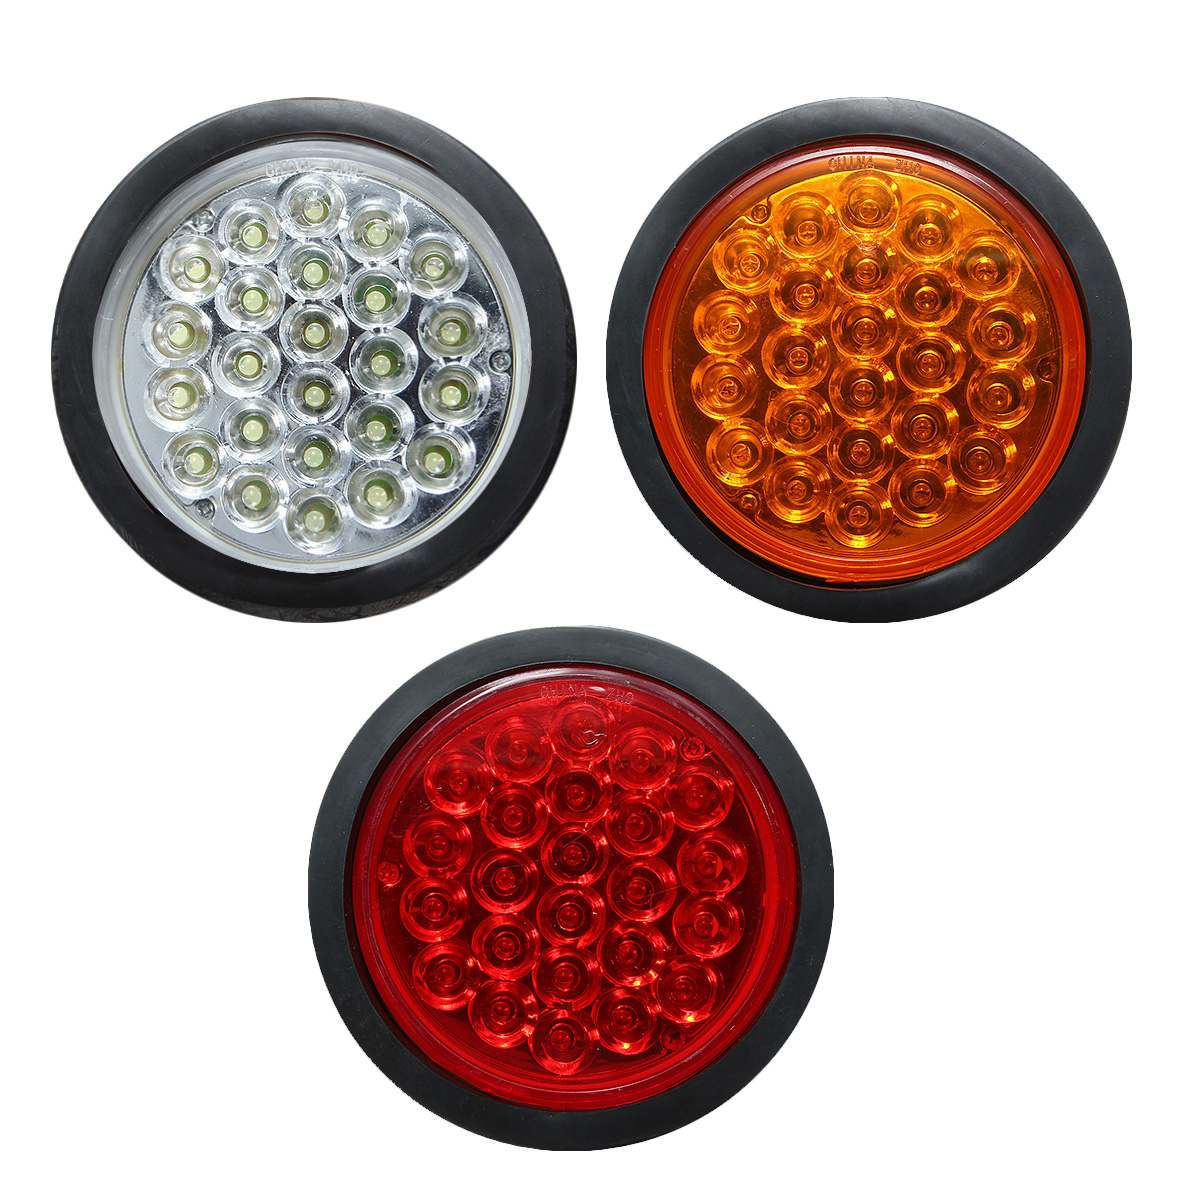 Rear Tail Brake Stop Marker Light Indicator Car Truck Trailer 24 LEDS Round Reflector Red Yellow White 1PC 24V